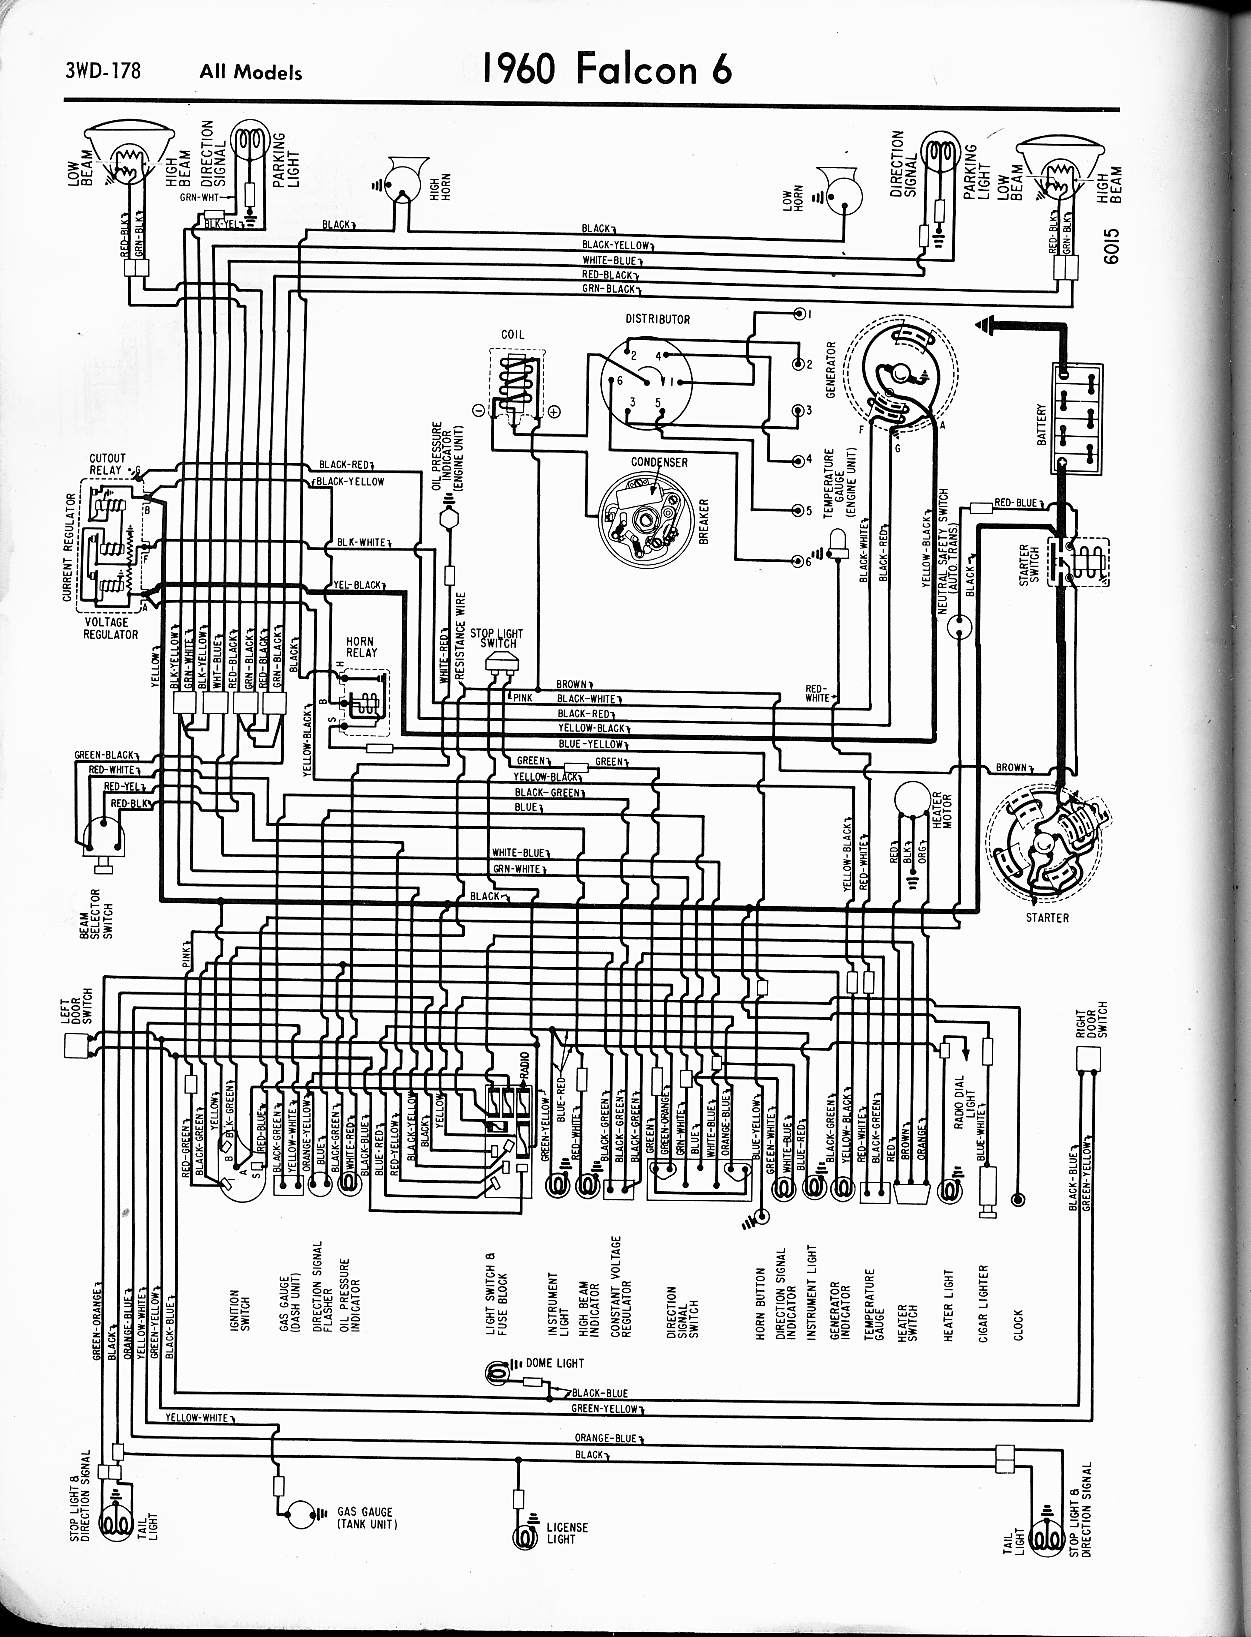 1960 Ford Thunderbird Wiring Diagram Library 1954 8n Schematic 6 Cyl Falcon 57 65 Diagrams